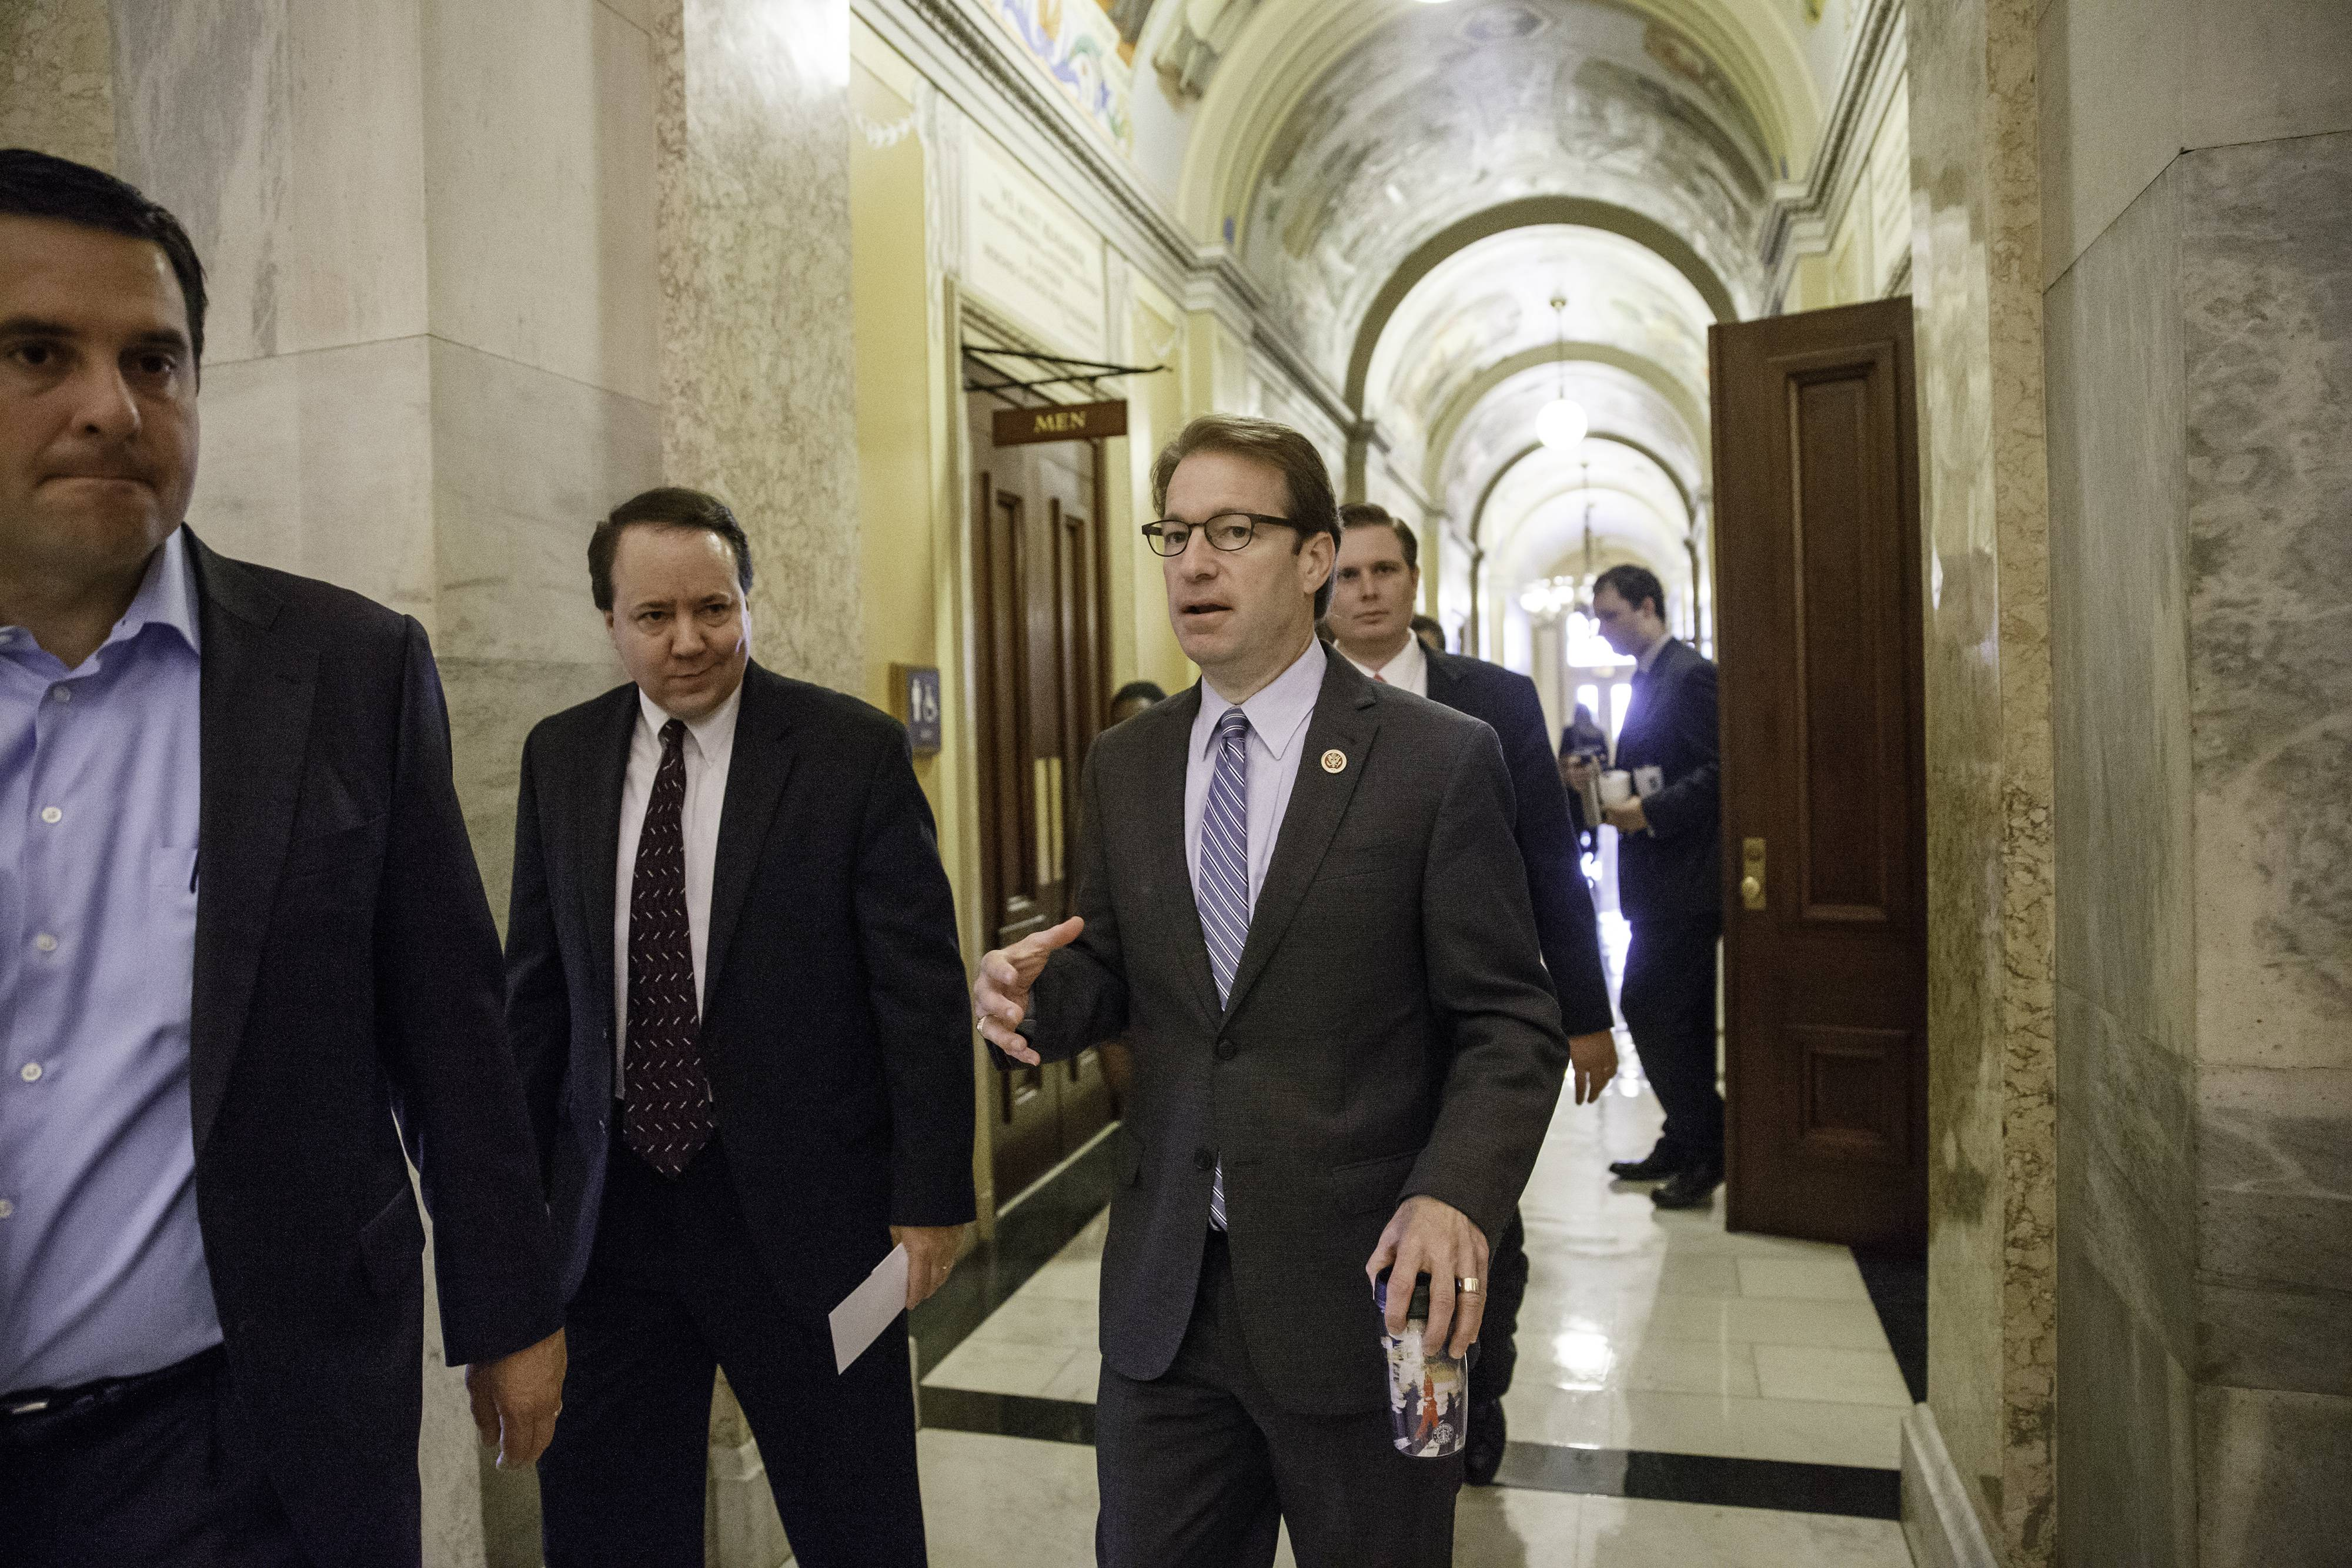 U.S. Rep. Peter Roskam of Wheaton speaks with Republican Reps. Devin Nunes of California, left, and Pat Tiberi of Ohio, second from left, before a leadership vote Thursday at the Capitol in Washington, D.C.